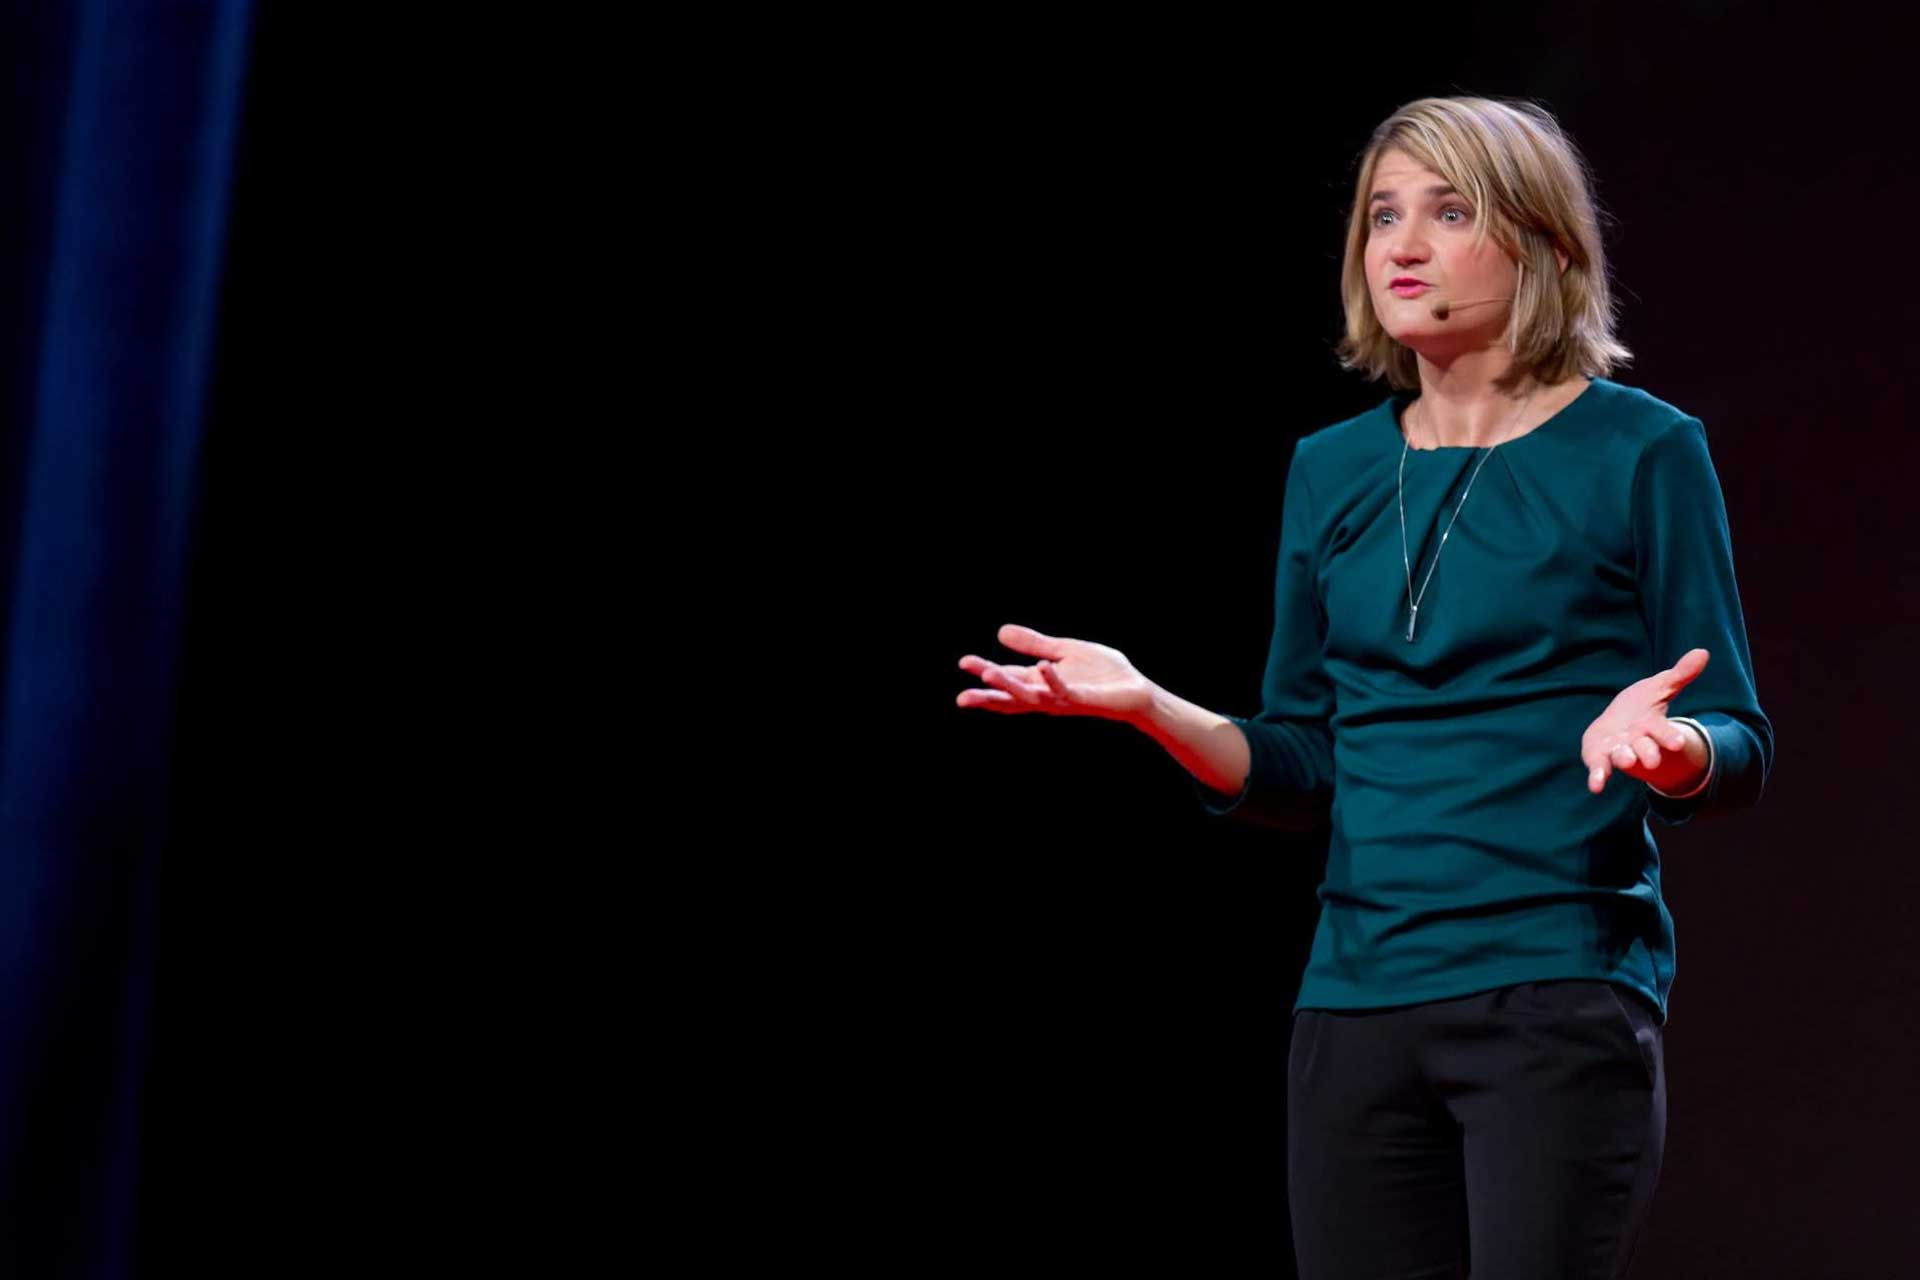 conference-TEDxParis-2015-11.jpg